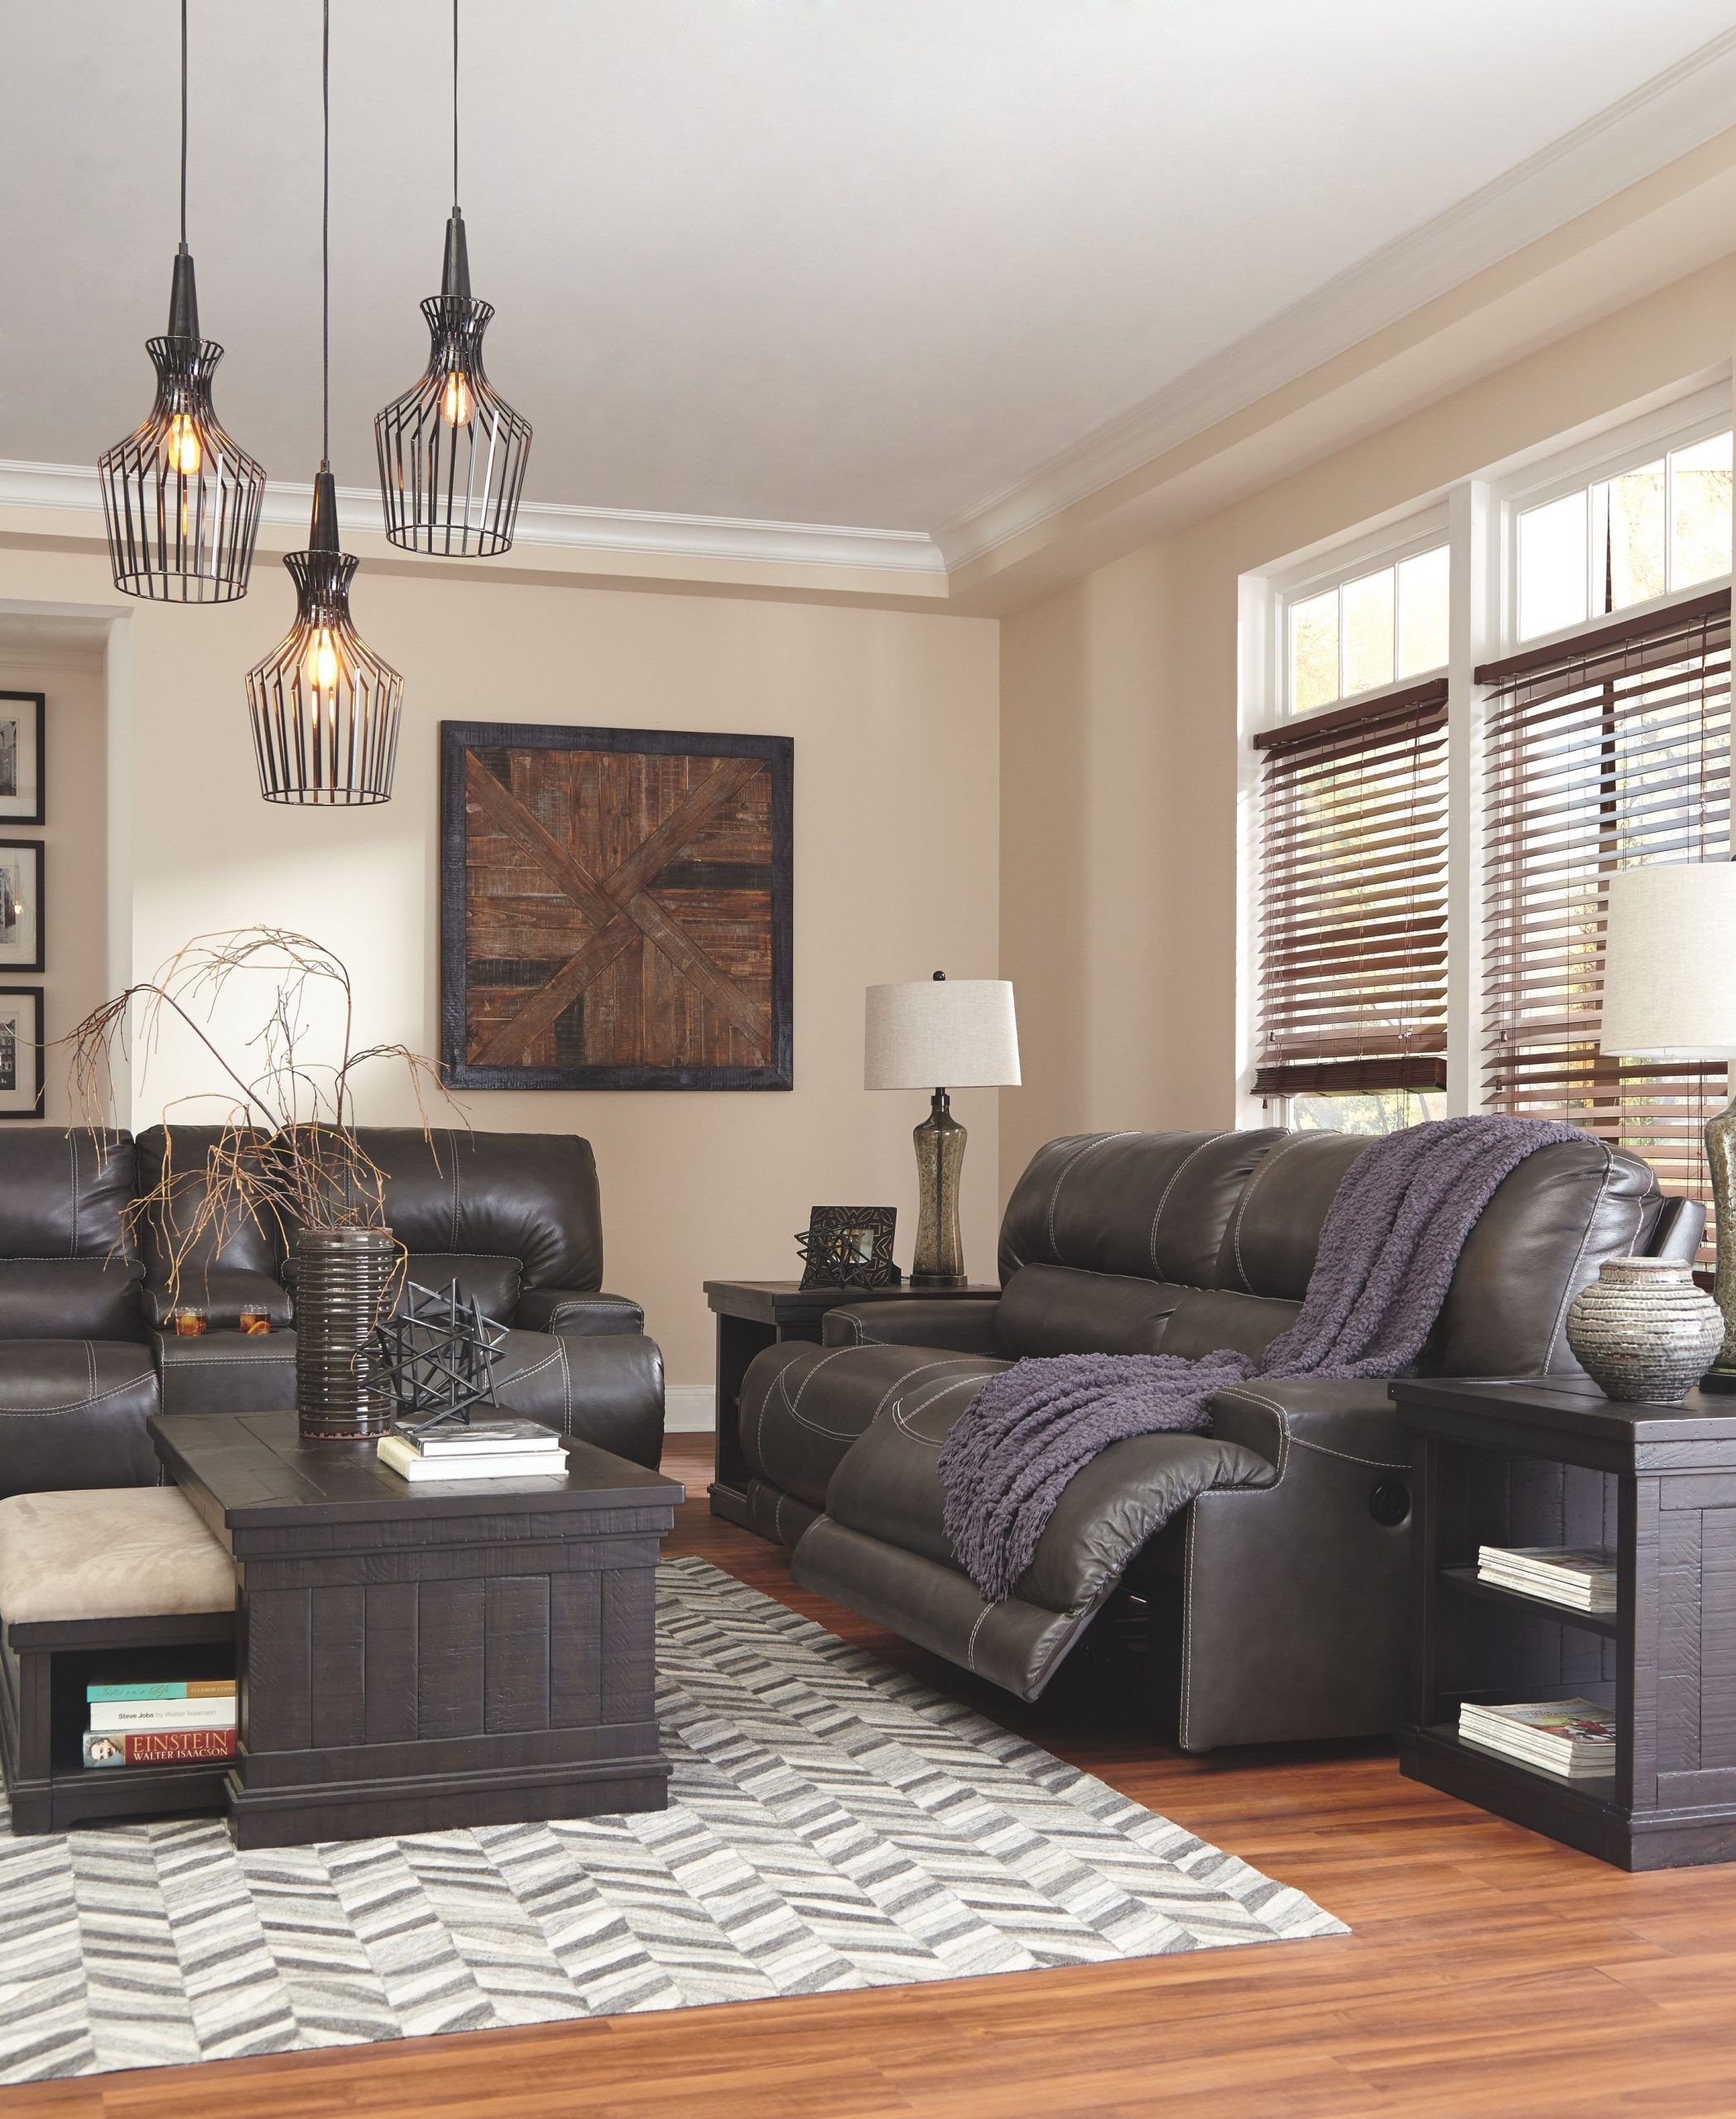 Gray Leather Living Room Furniture Mccaskill Power Reclining Sofa Gray Leather Living Room Leather Leather Couches Living Room Couches Living Room